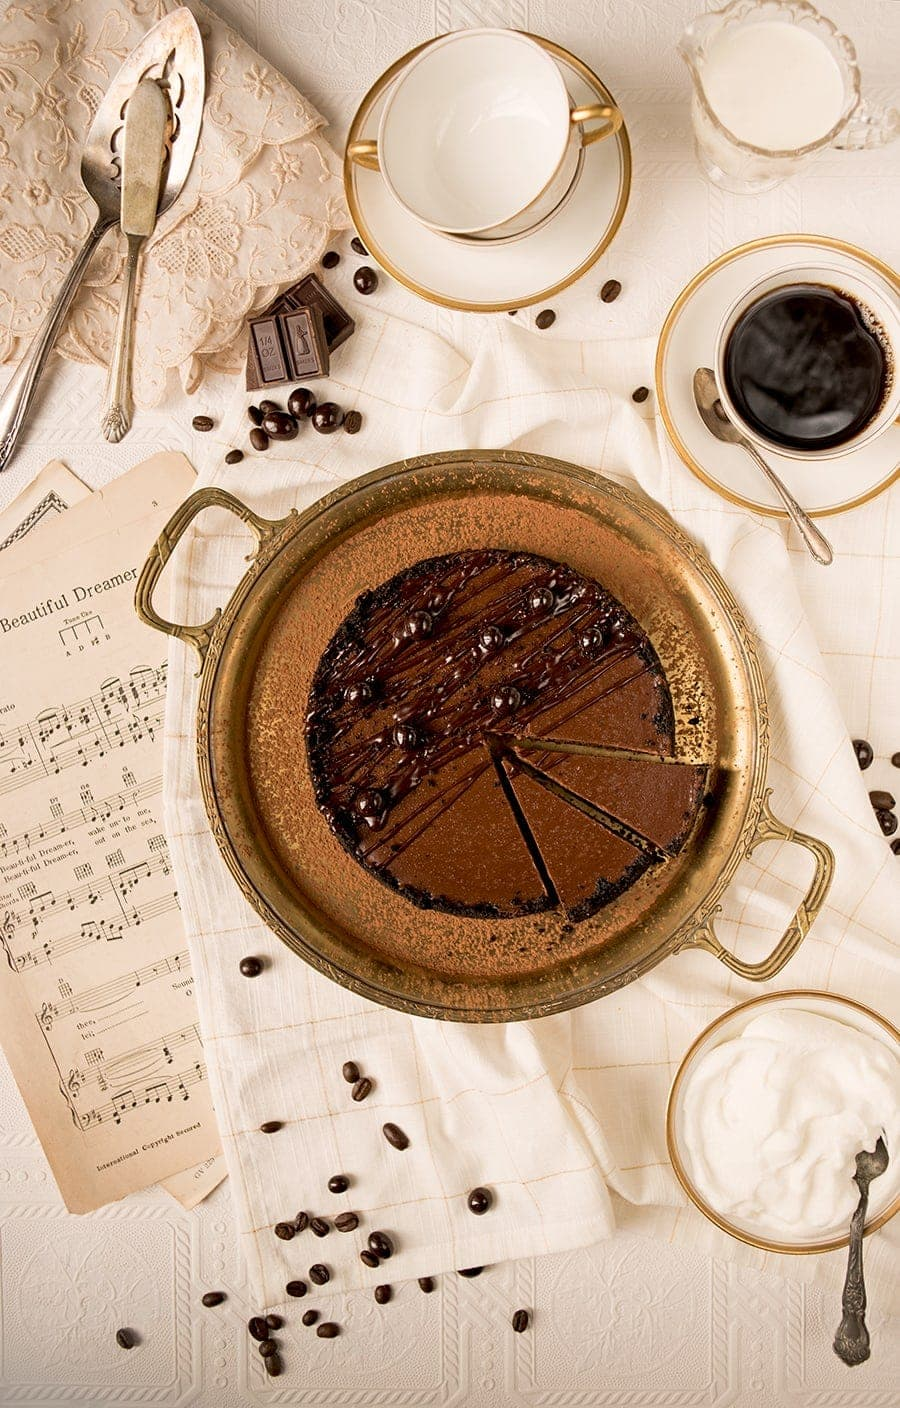 Instamt Pot Chocolate Espresso Cheesecake 8712 Web - Instant Pot Chocolate Cheesecake with Espresso Beans and Oreo Crust